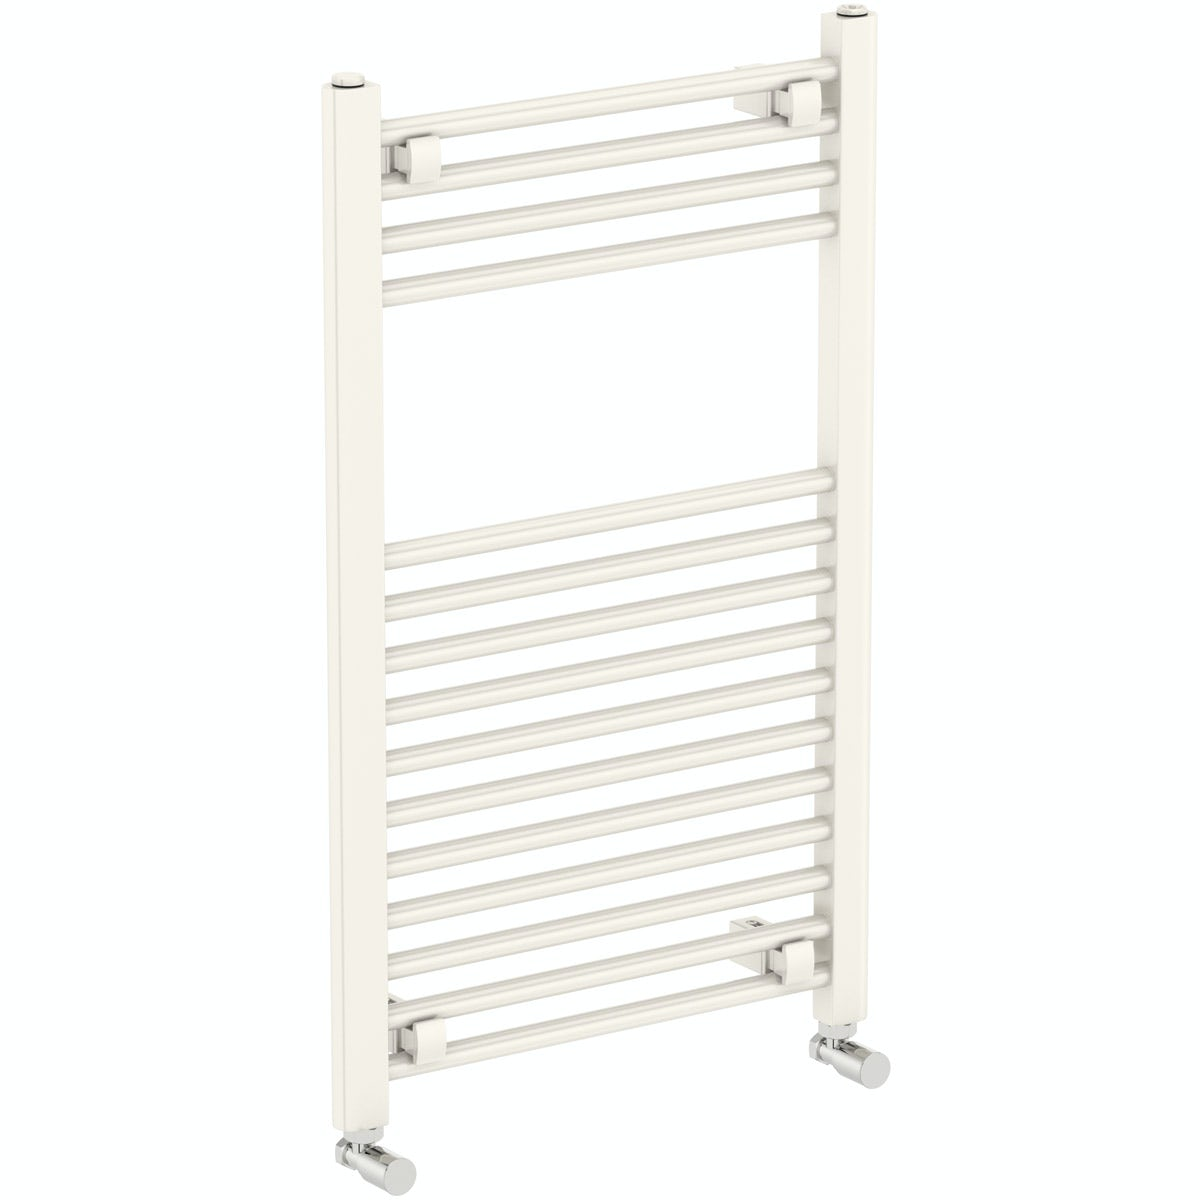 The Heating Co. Eden round white heated towel rail 800 x